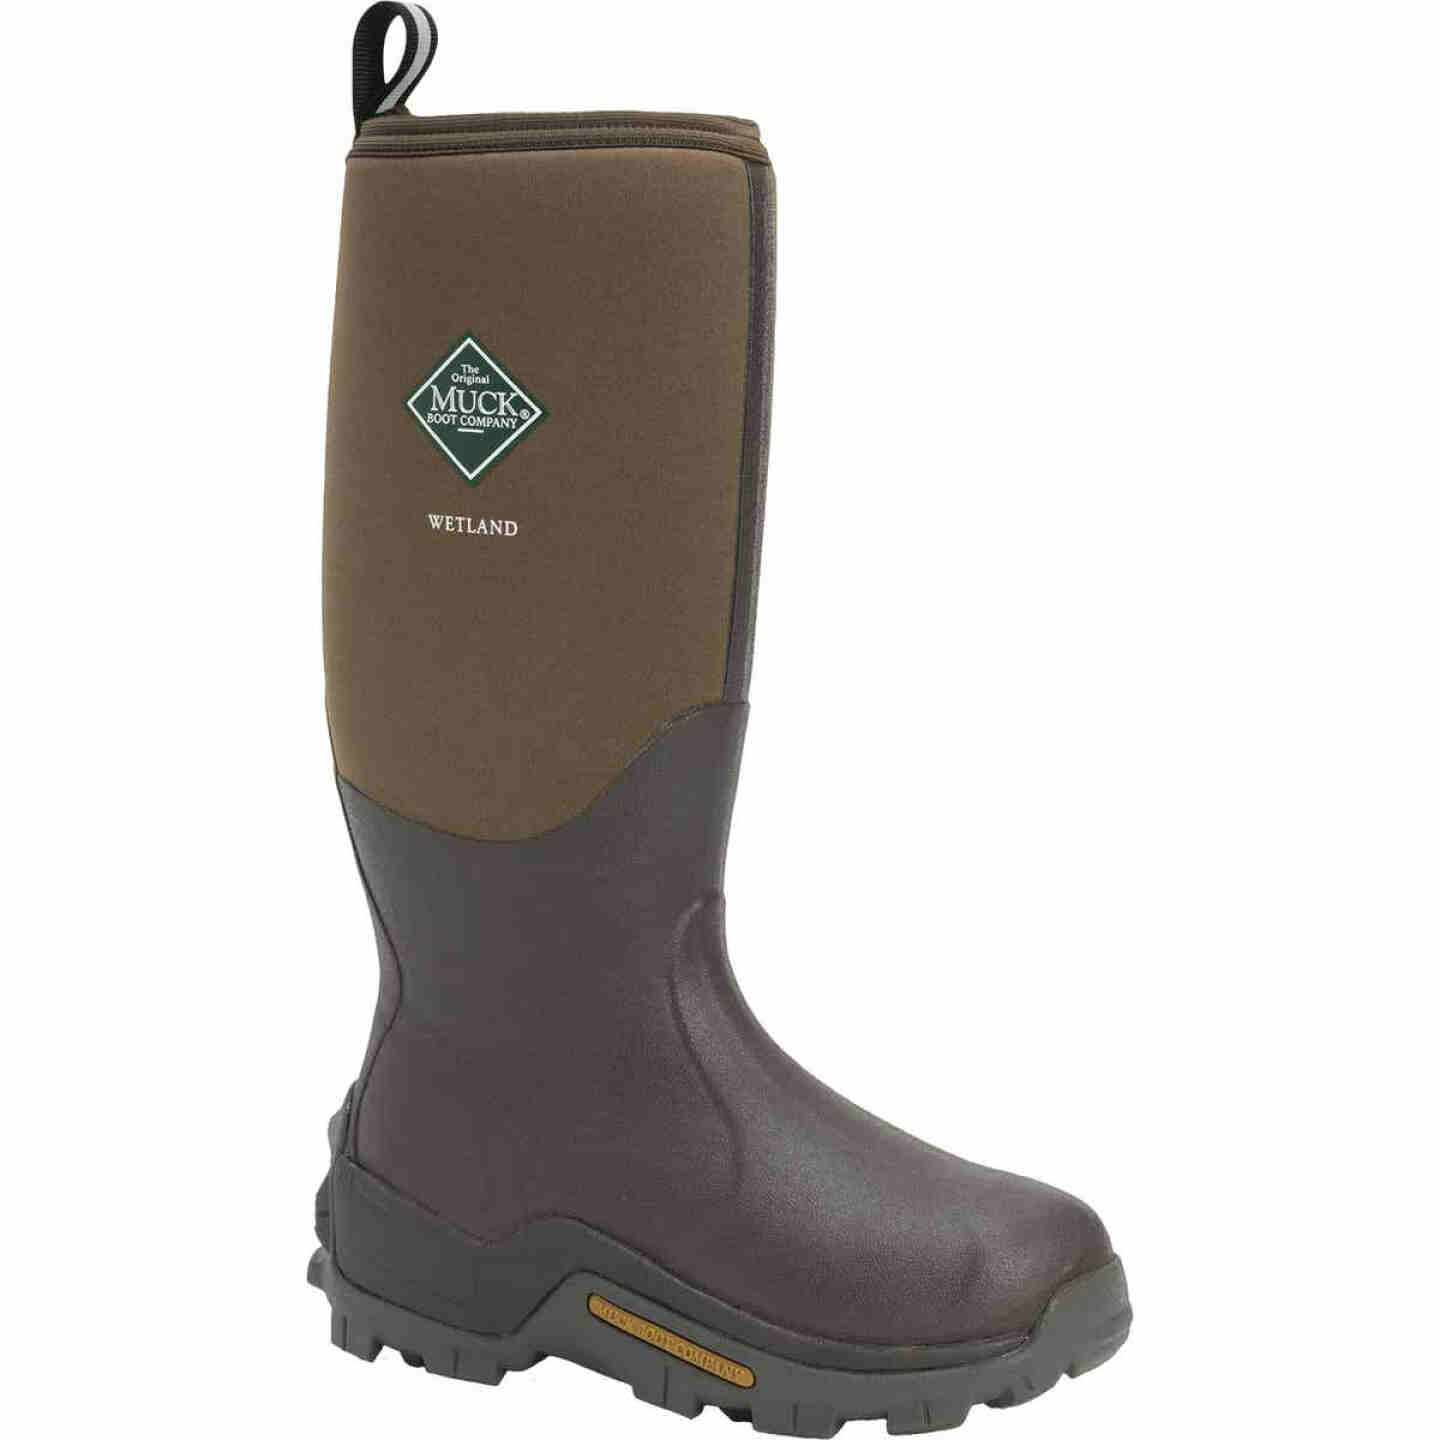 Muck Boot Co Wetland Men's Size 9 Waterproof Hunting Boot Image 1